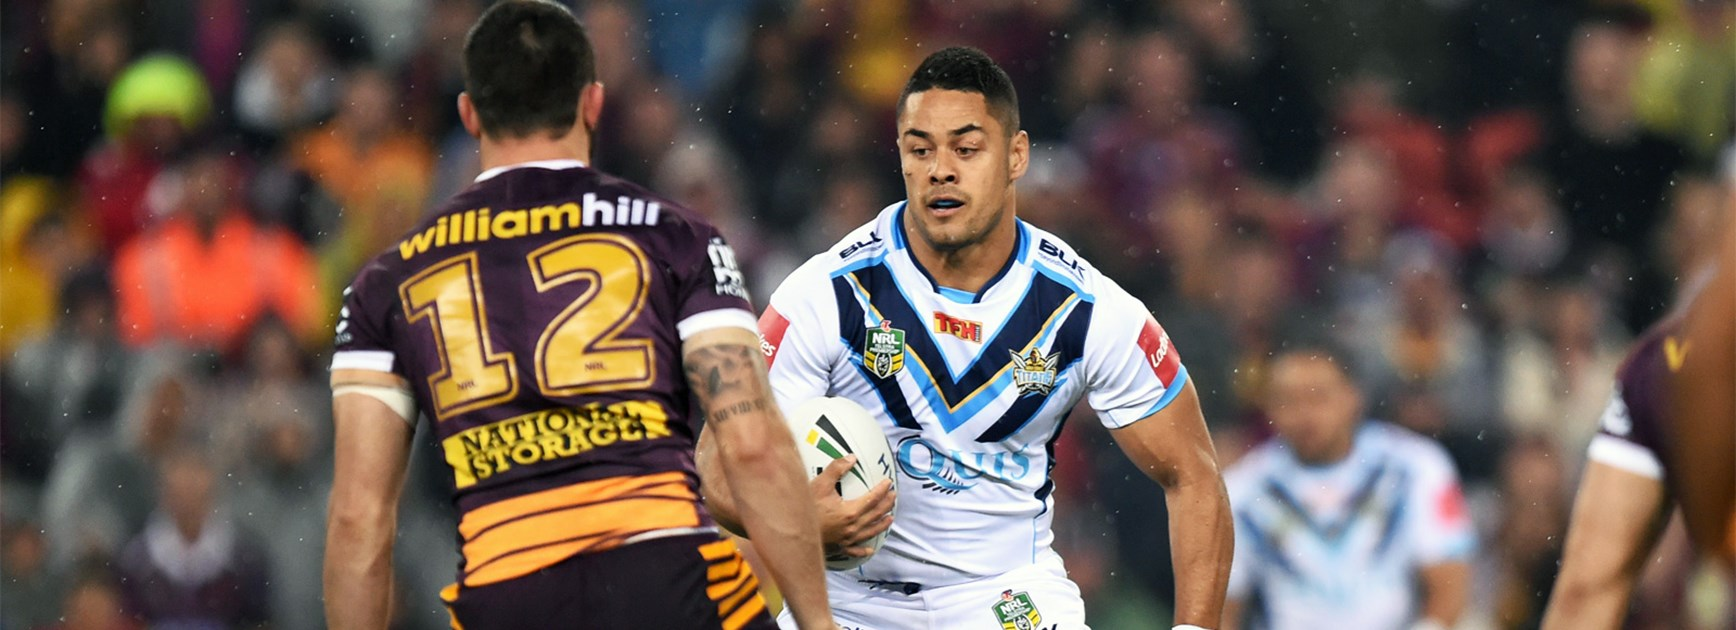 Jarryd Hayne takes on the Broncos defence on Friday night.